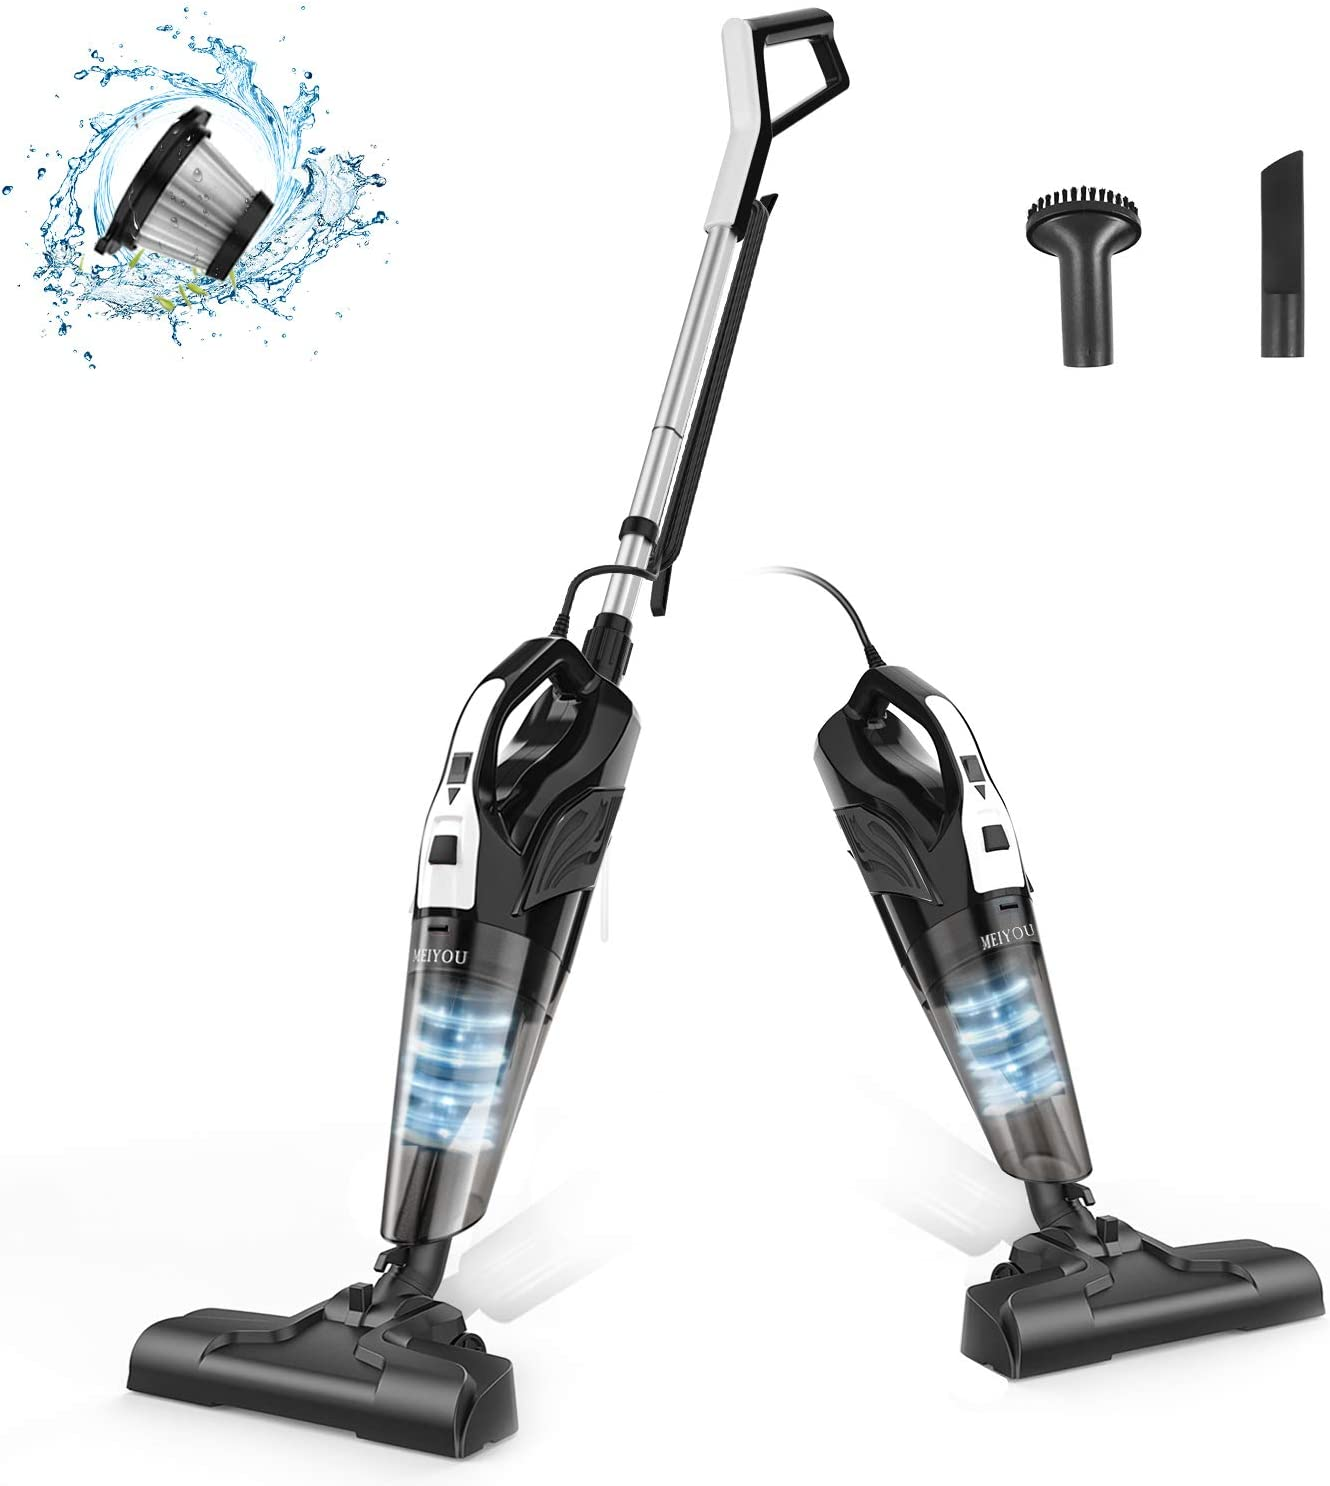 Stick Vacuum Cleaner Corded, Meiyou Stand Lightweight 18000Pa Powerful Suction 2-in-1 Stick Handheld Vacuum Cleaner Dry/Wet Household for Hard Floor and Carpet Cleanig, Black&White